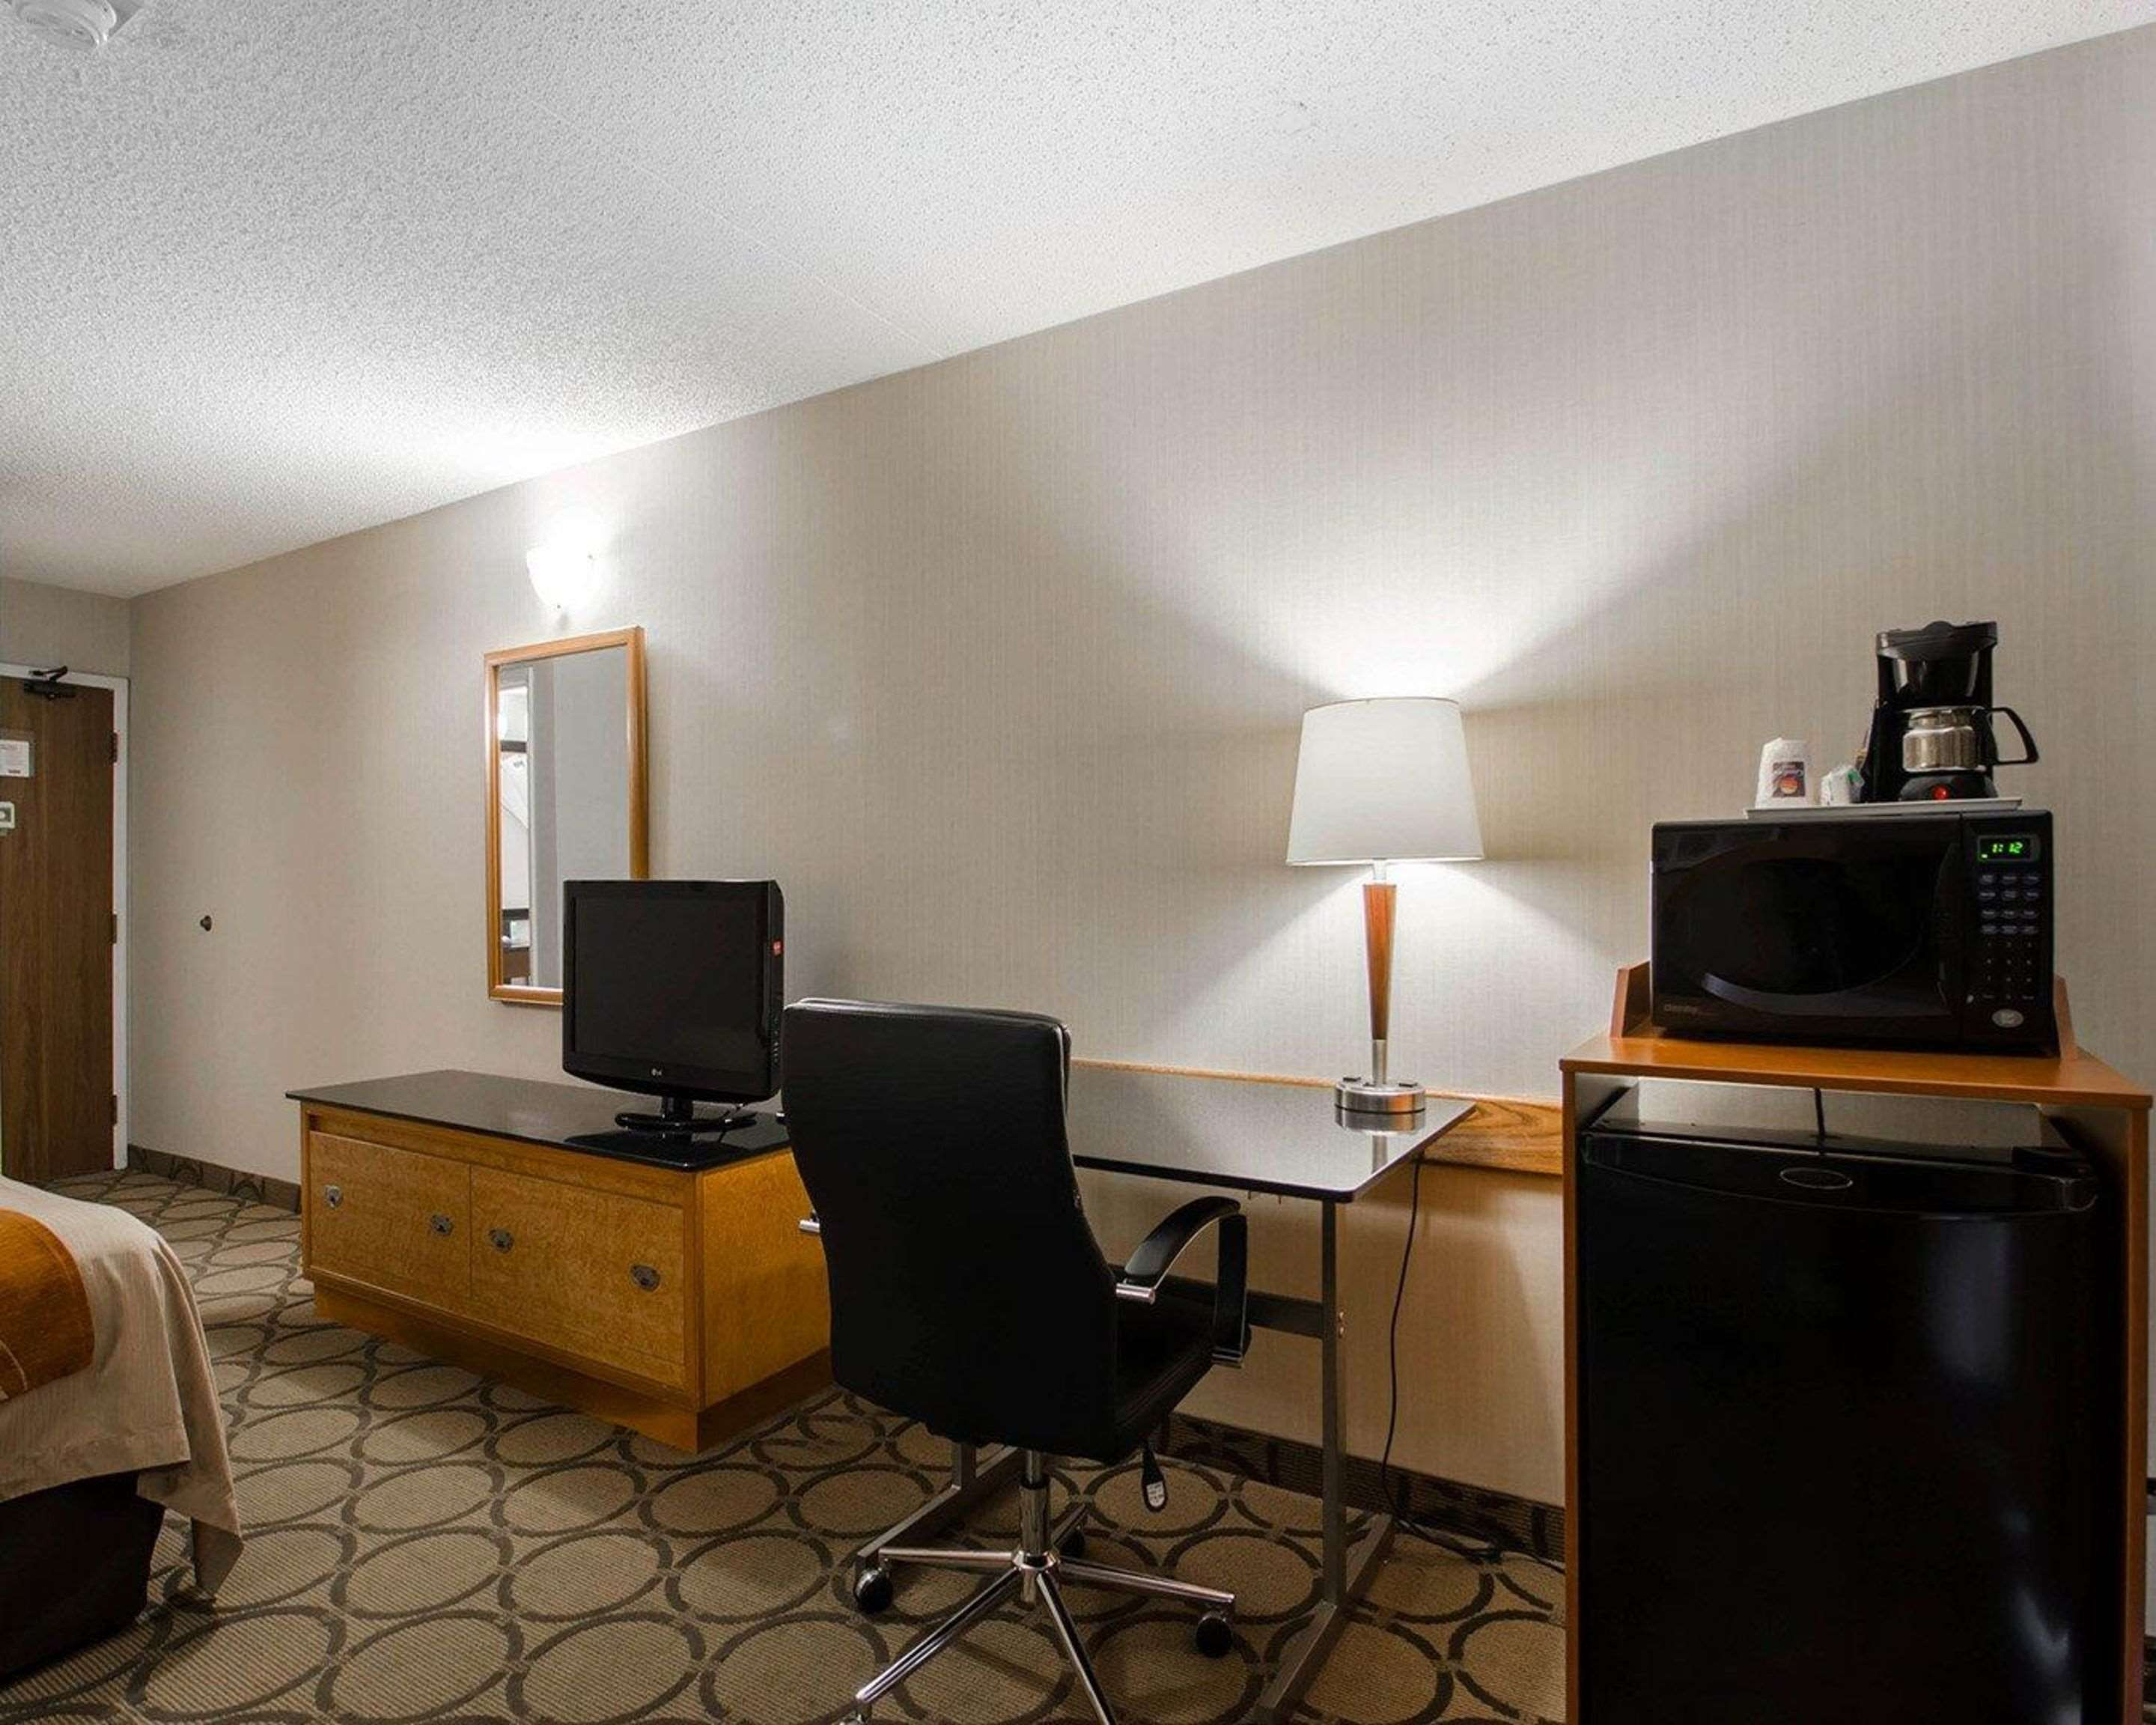 Comfort Inn in Prince Albert: Guest room with added amenities